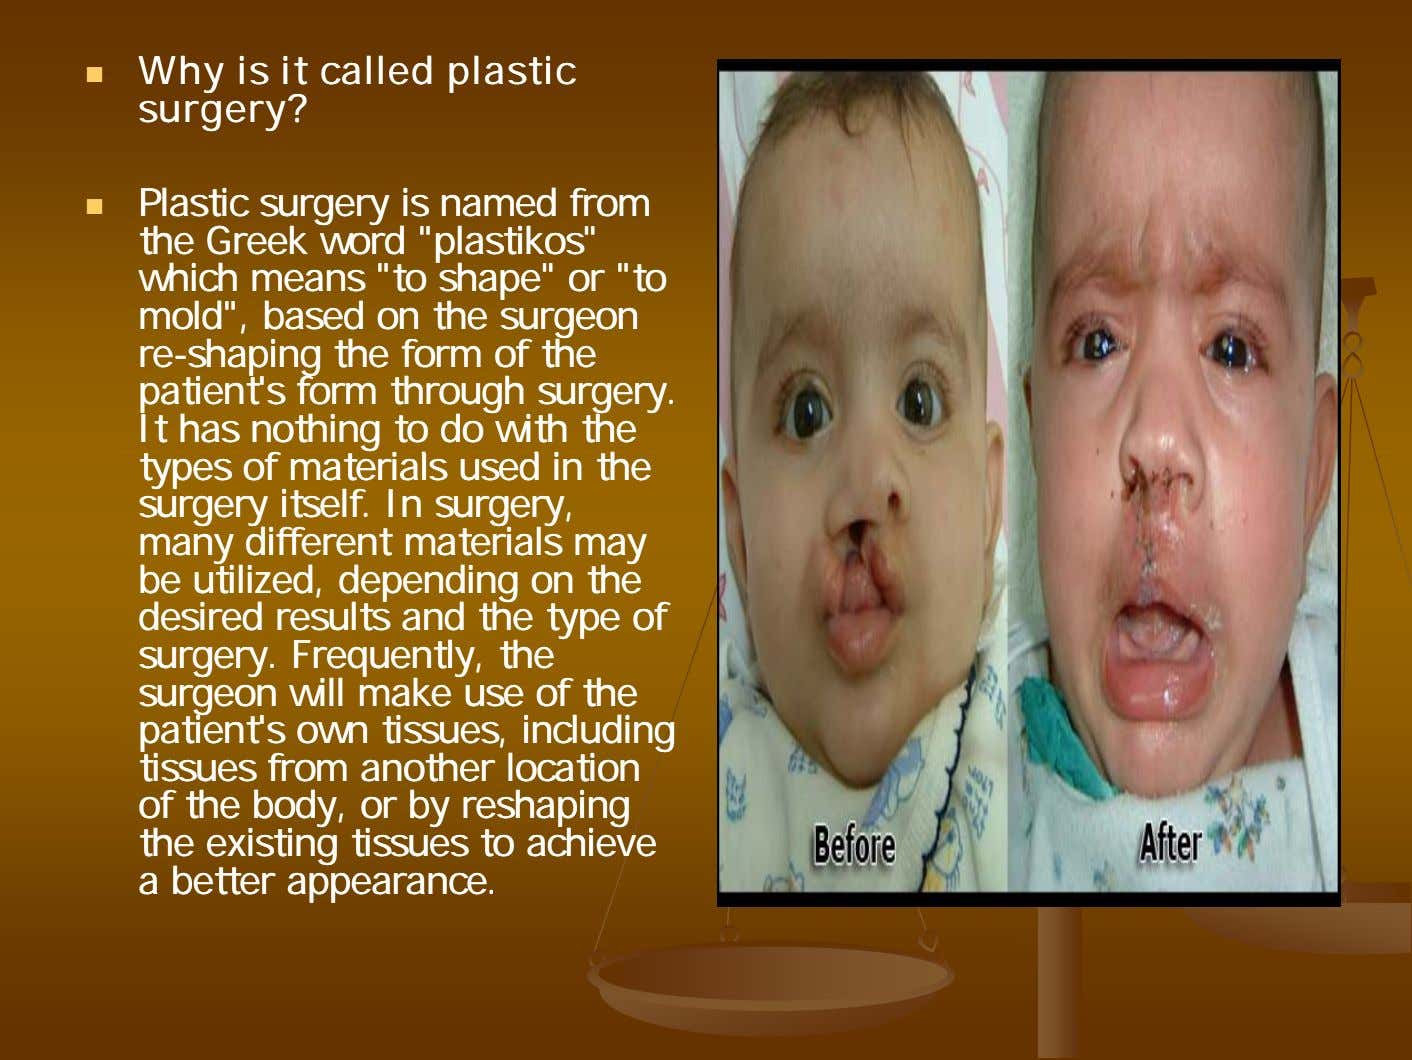 WhyWhy isis itit calledcalled plasticplastic surgery?surgery? PlasticPlastic surgerysurgery isis namednamed fromfrom